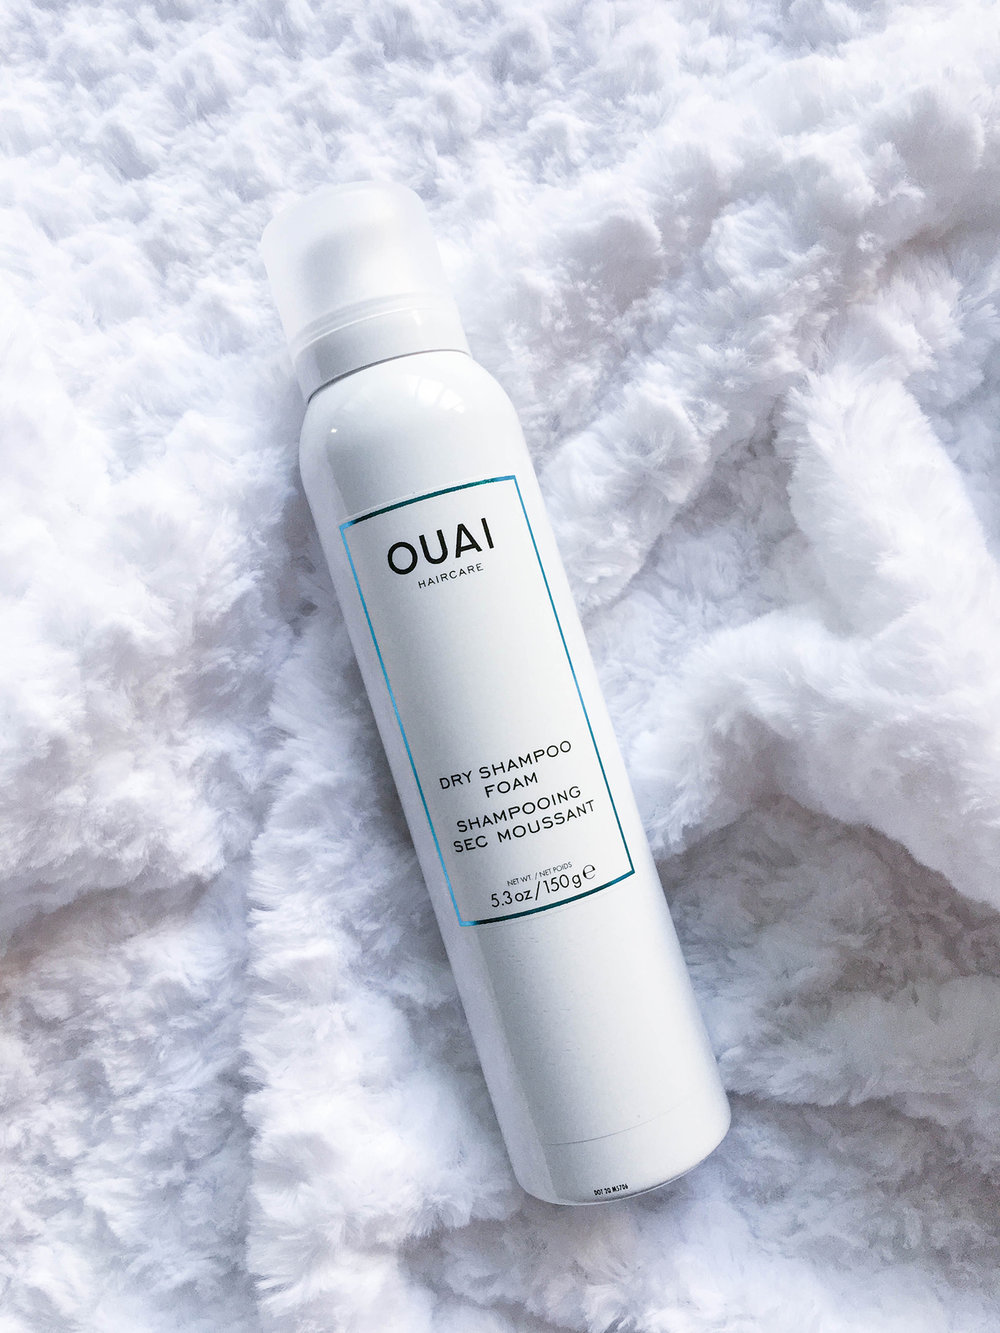 Ouai's new Dry Shampoo Foam is a fun way to revive dirty hair. See the first impression on beautybyjessika.com.